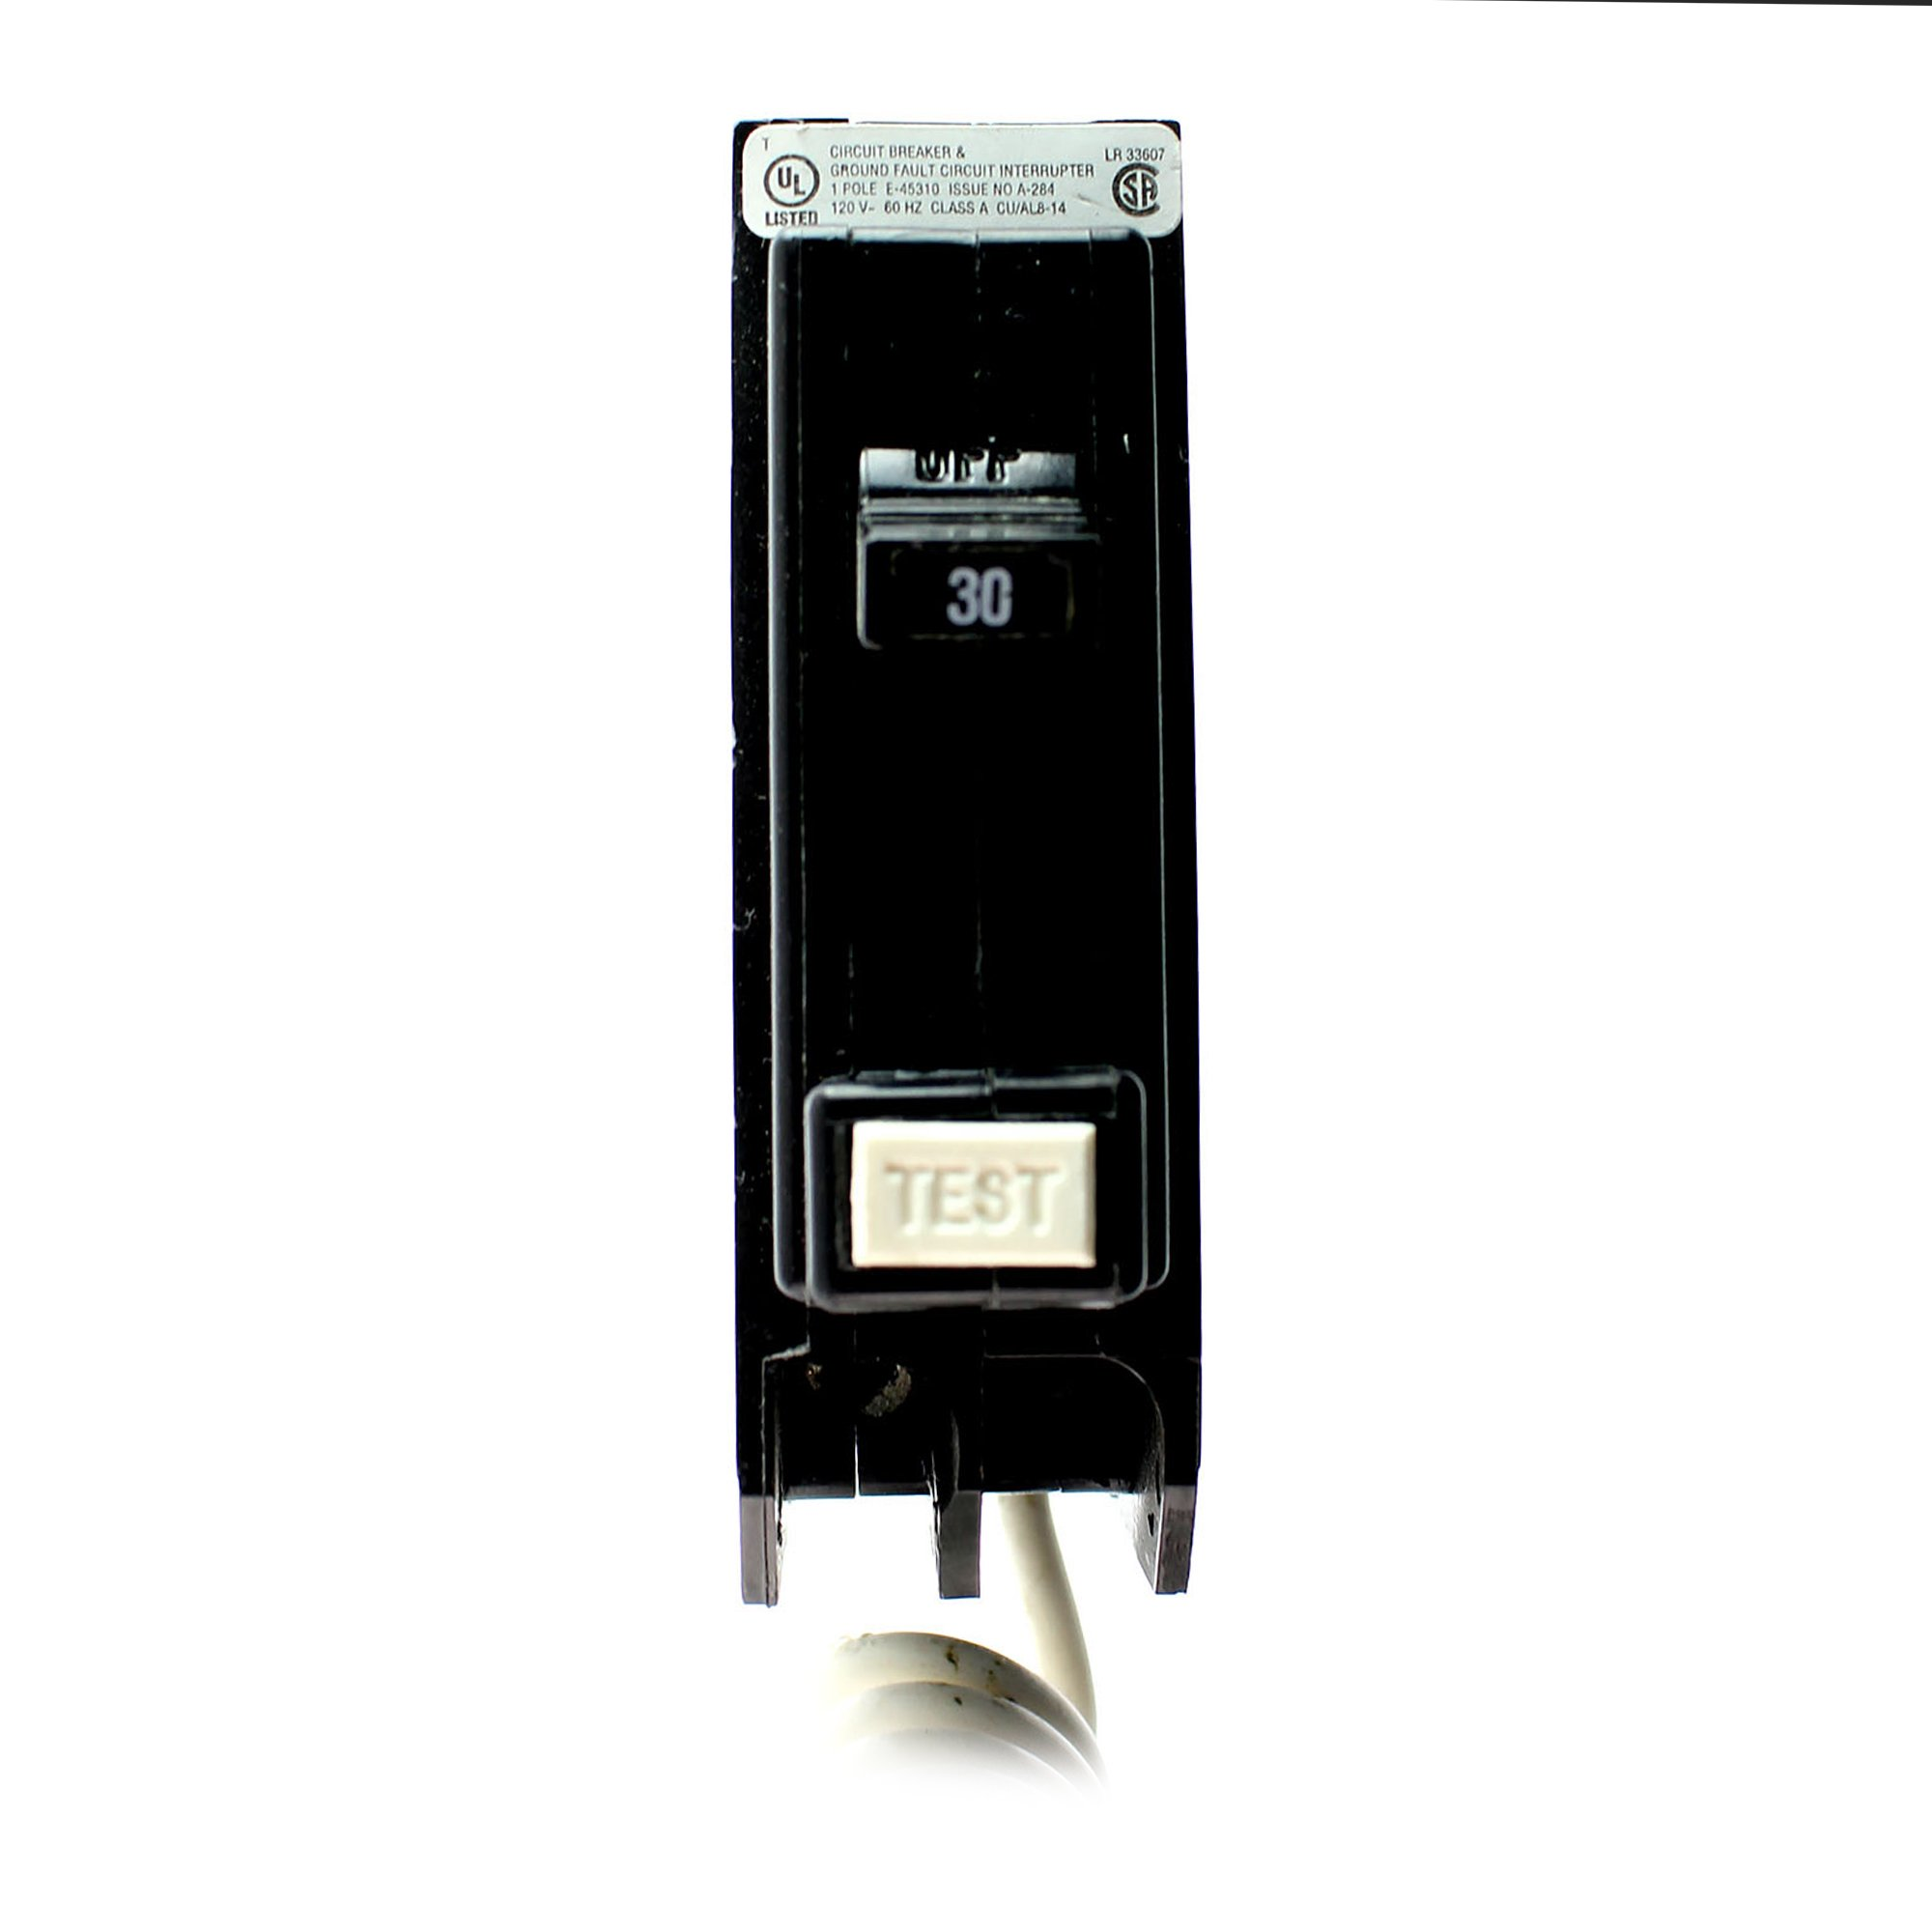 Cutler Hammer Eaton QBGF1030 Ground Fault Circuit Breaker 120V